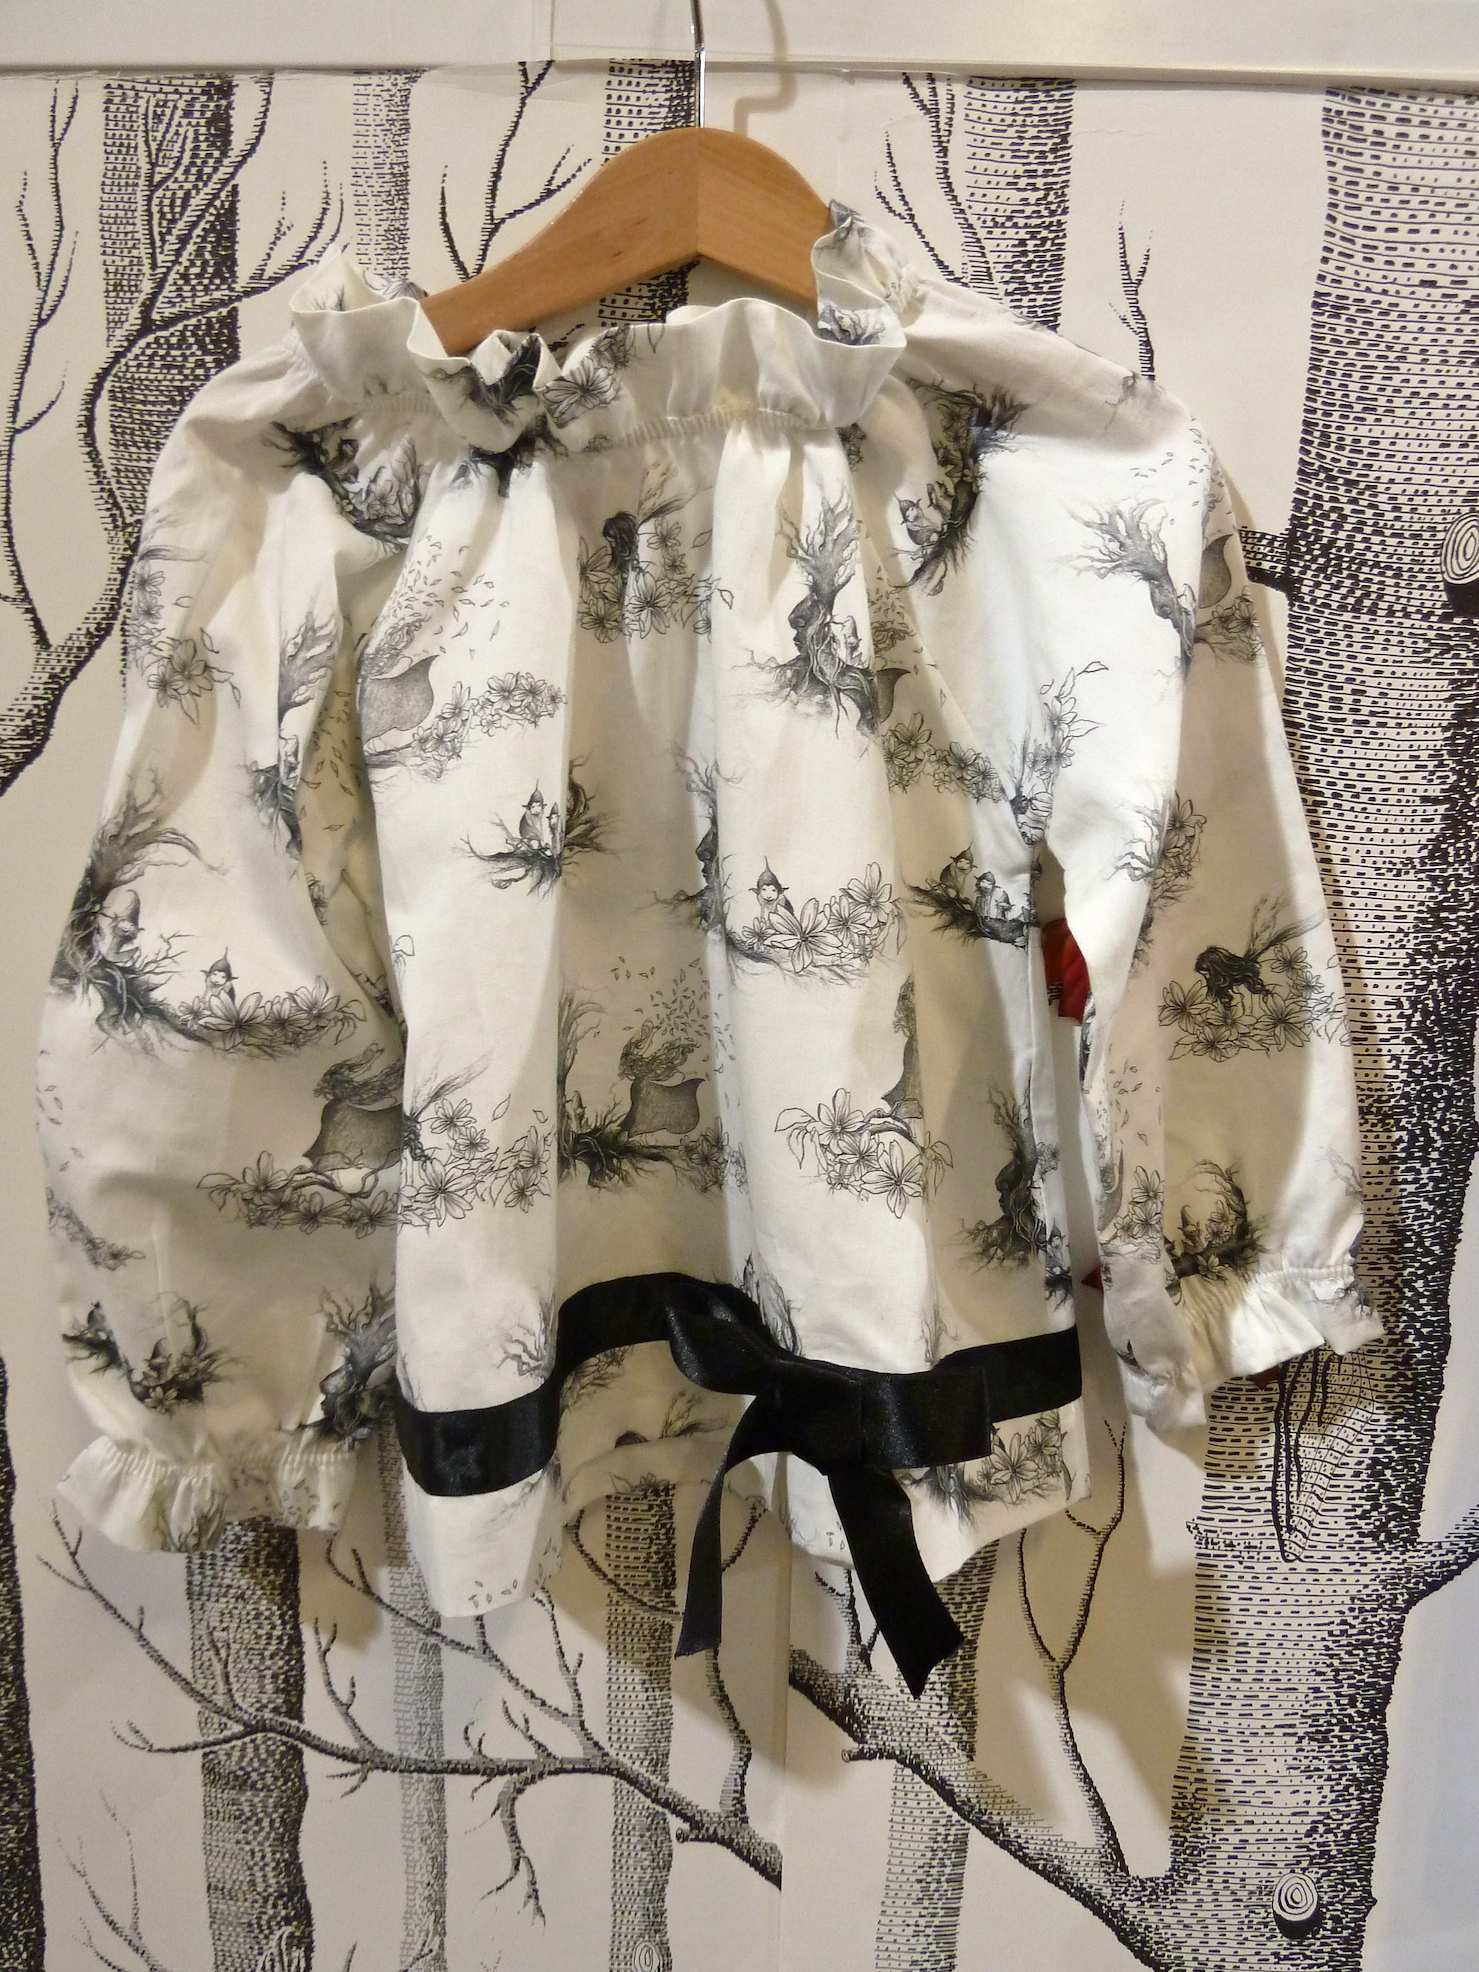 New childrenswear exhibitor P'tit chic...de Paris with sweet print blouse